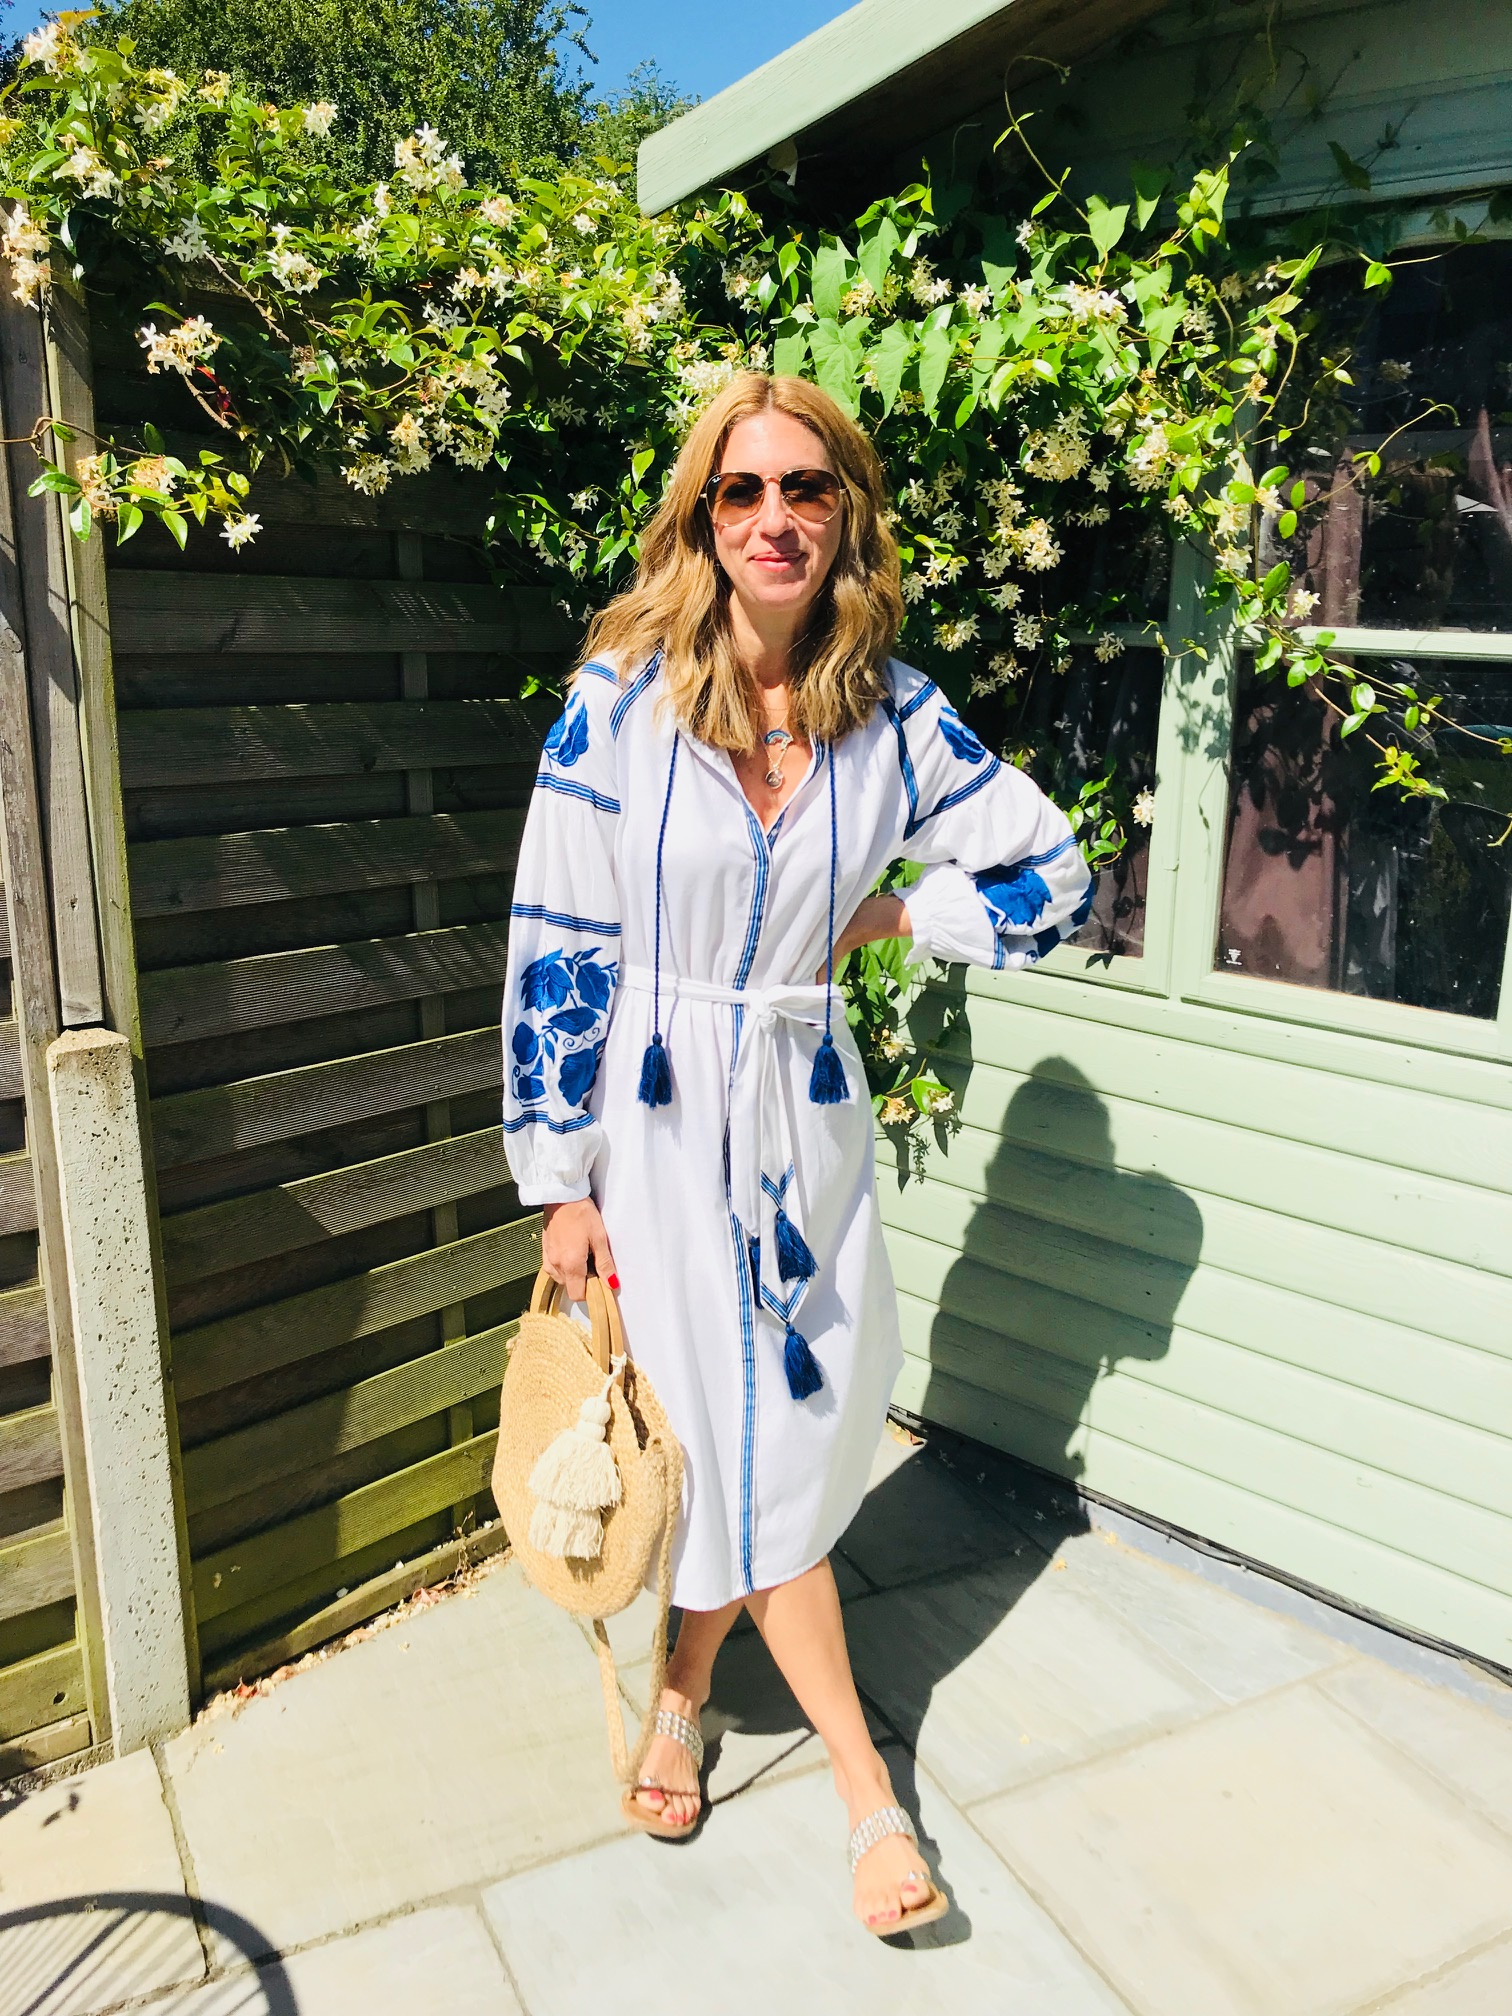 Kaftan - From Kirei was £130 now £78Great embroidery detailsPerfect over a bikini (slightly sheer)Generous fit. This is XSCotton